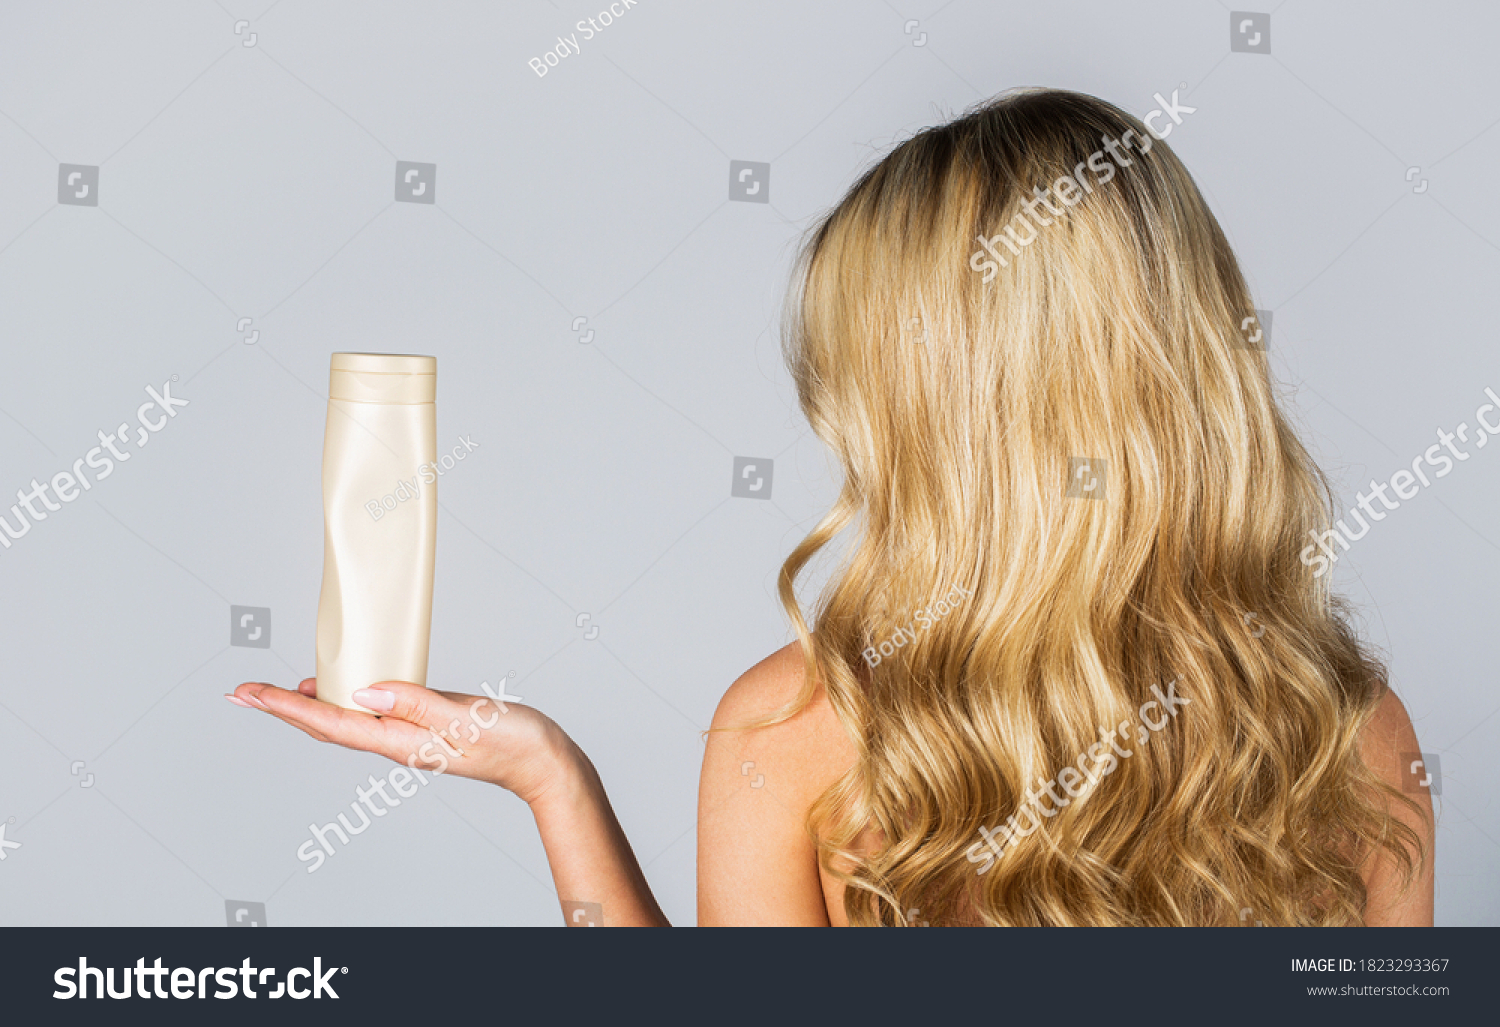 Woman hold bottle shampoo and conditioner. Woman holding shampoo bottle. Beautiful blonde girl with a bottle of shampoos in hands. Girl with shiny and long hair. Woman long hair. #1823293367